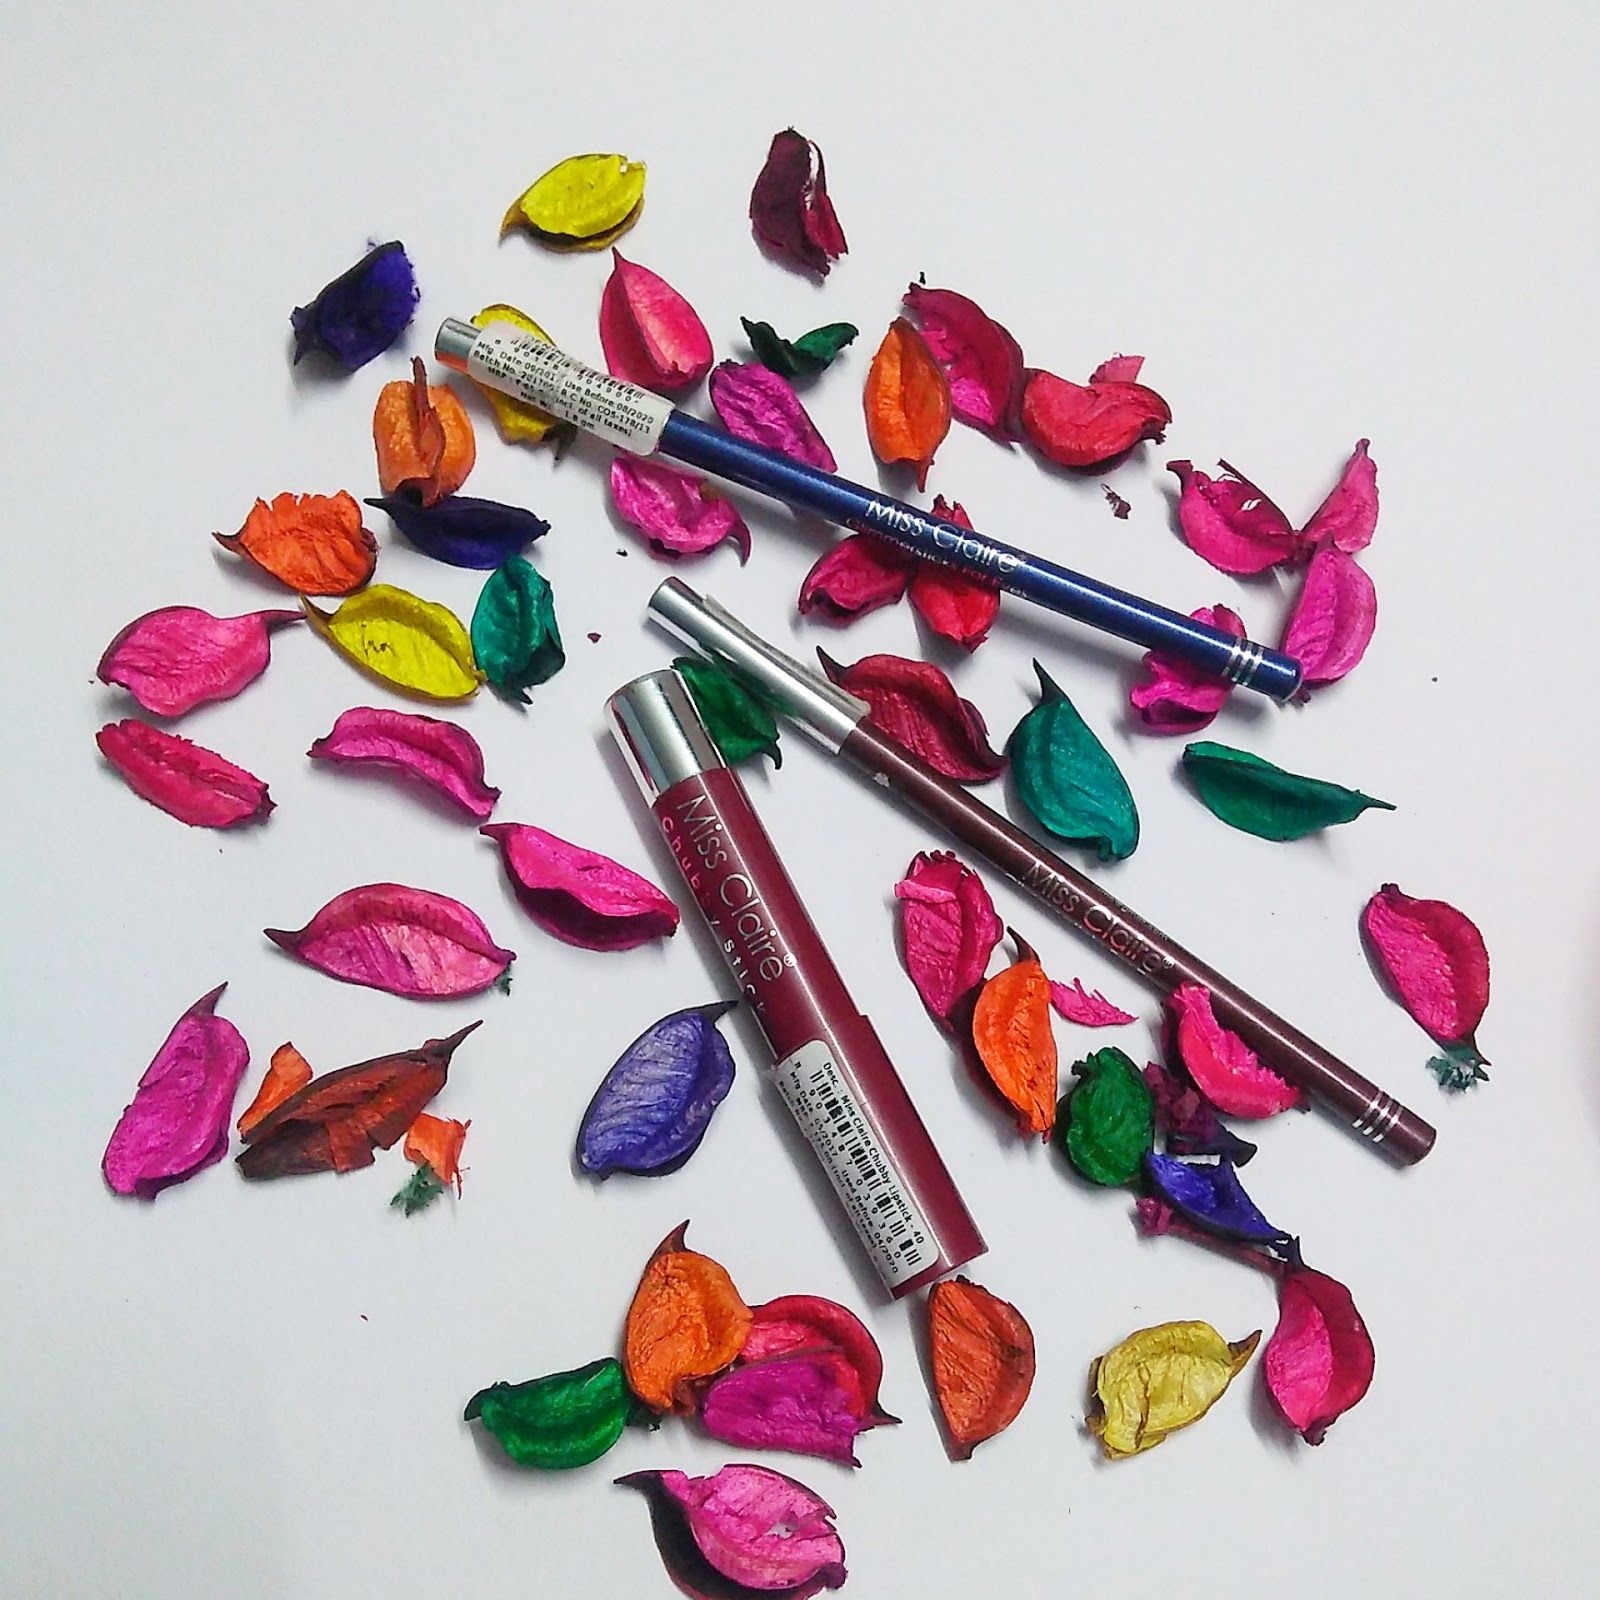 Miss Claire Lip Crayon Review & Swatches Lip crayons